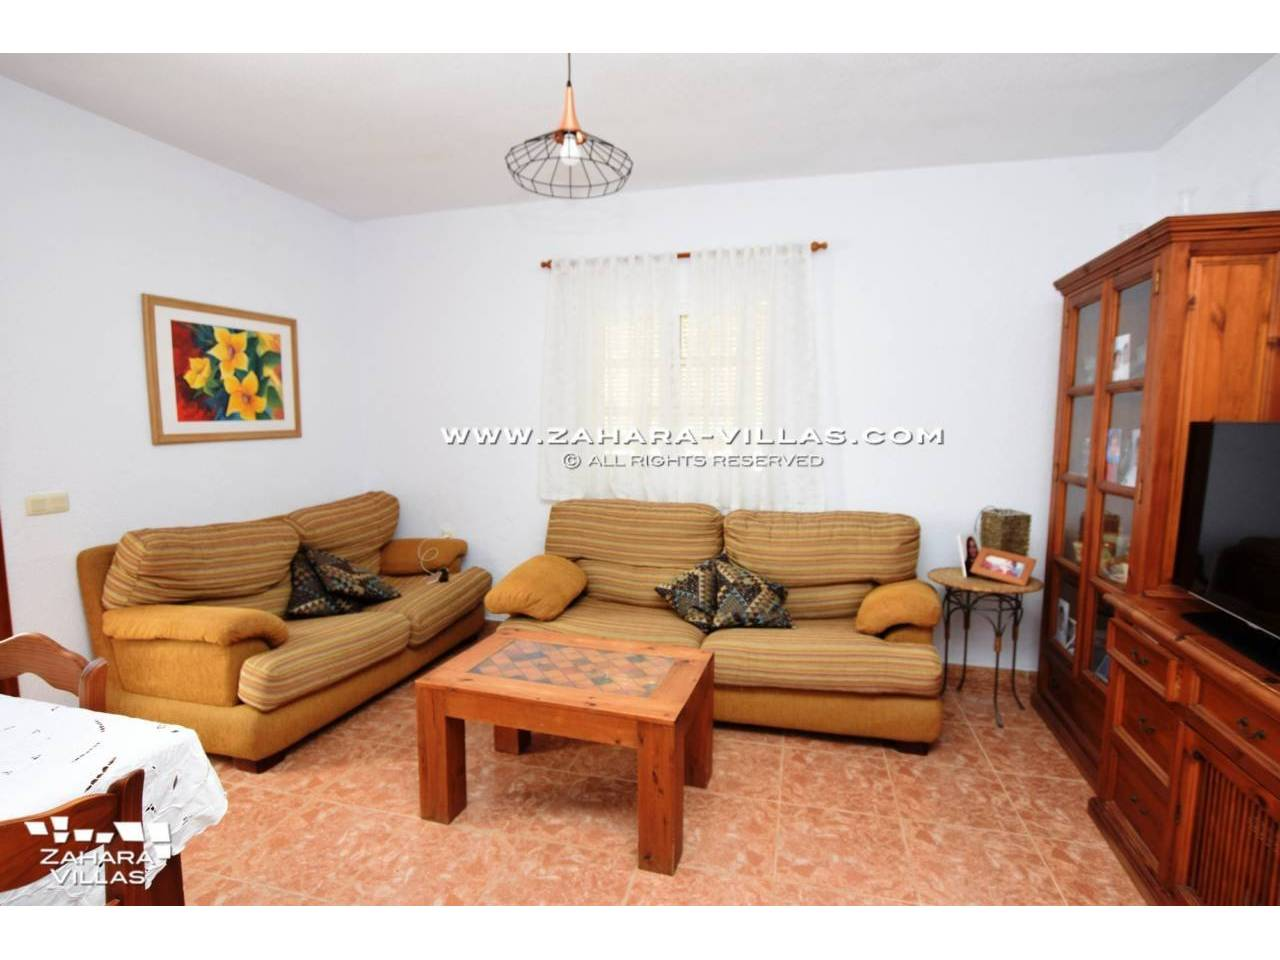 Imagen 12 de House in Avda. Del Pradillo for sale in the town of Zahara de los Atunes